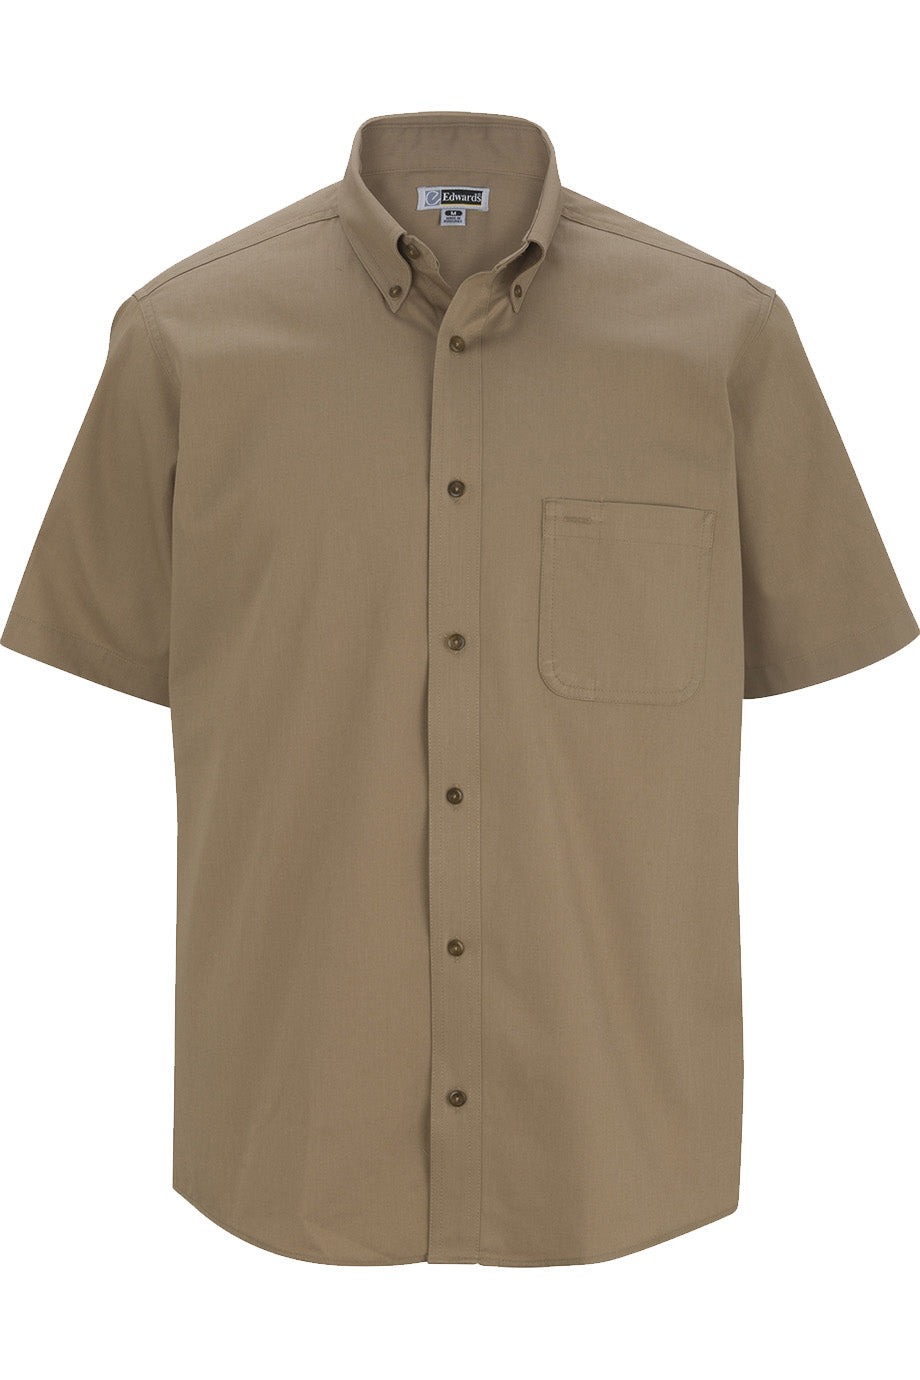 Tan Edwards Mens Cottonplus Short Sleeve Twill Shirt